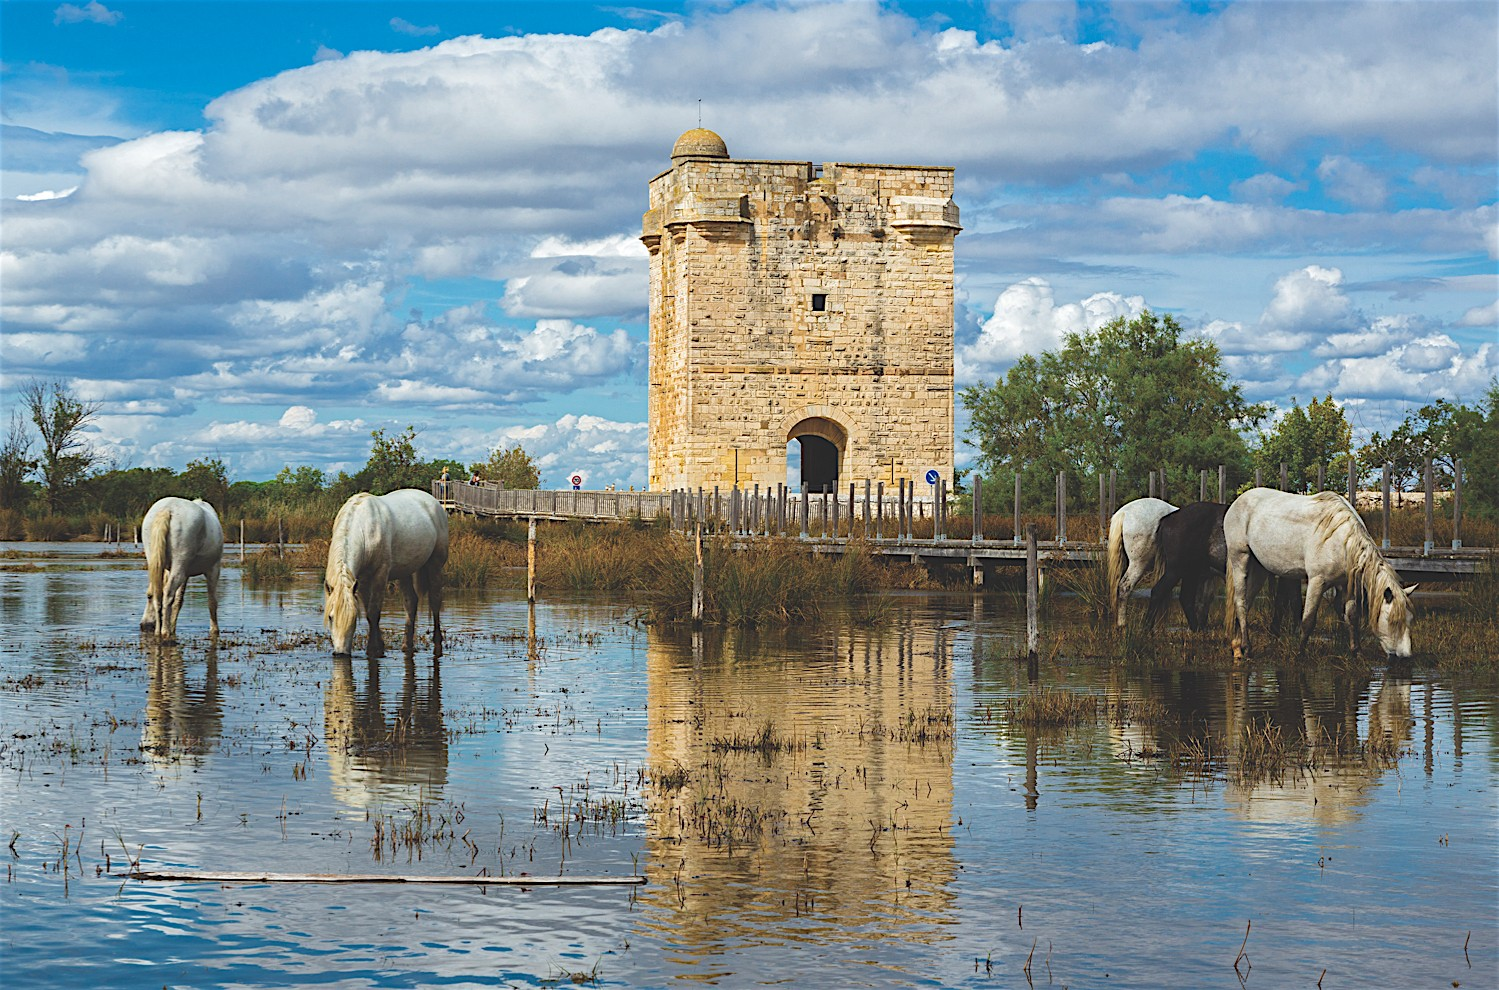 The Carbonniere near Aigues Mortes, Saint Laurent d'Aigouze, Gard,White horses in the Camargue, France